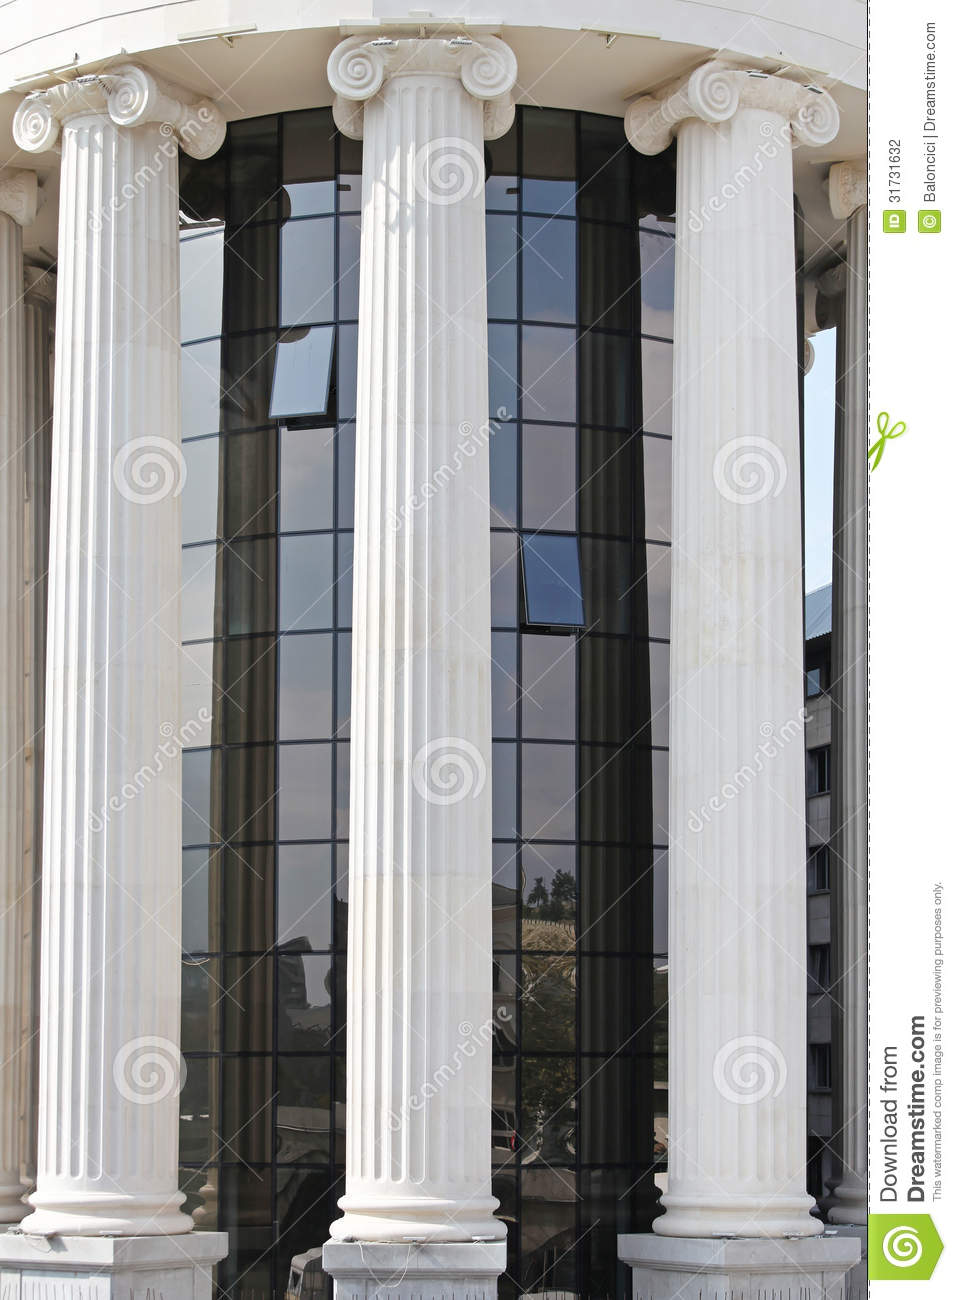 ionic columns stock photo image of stone columns